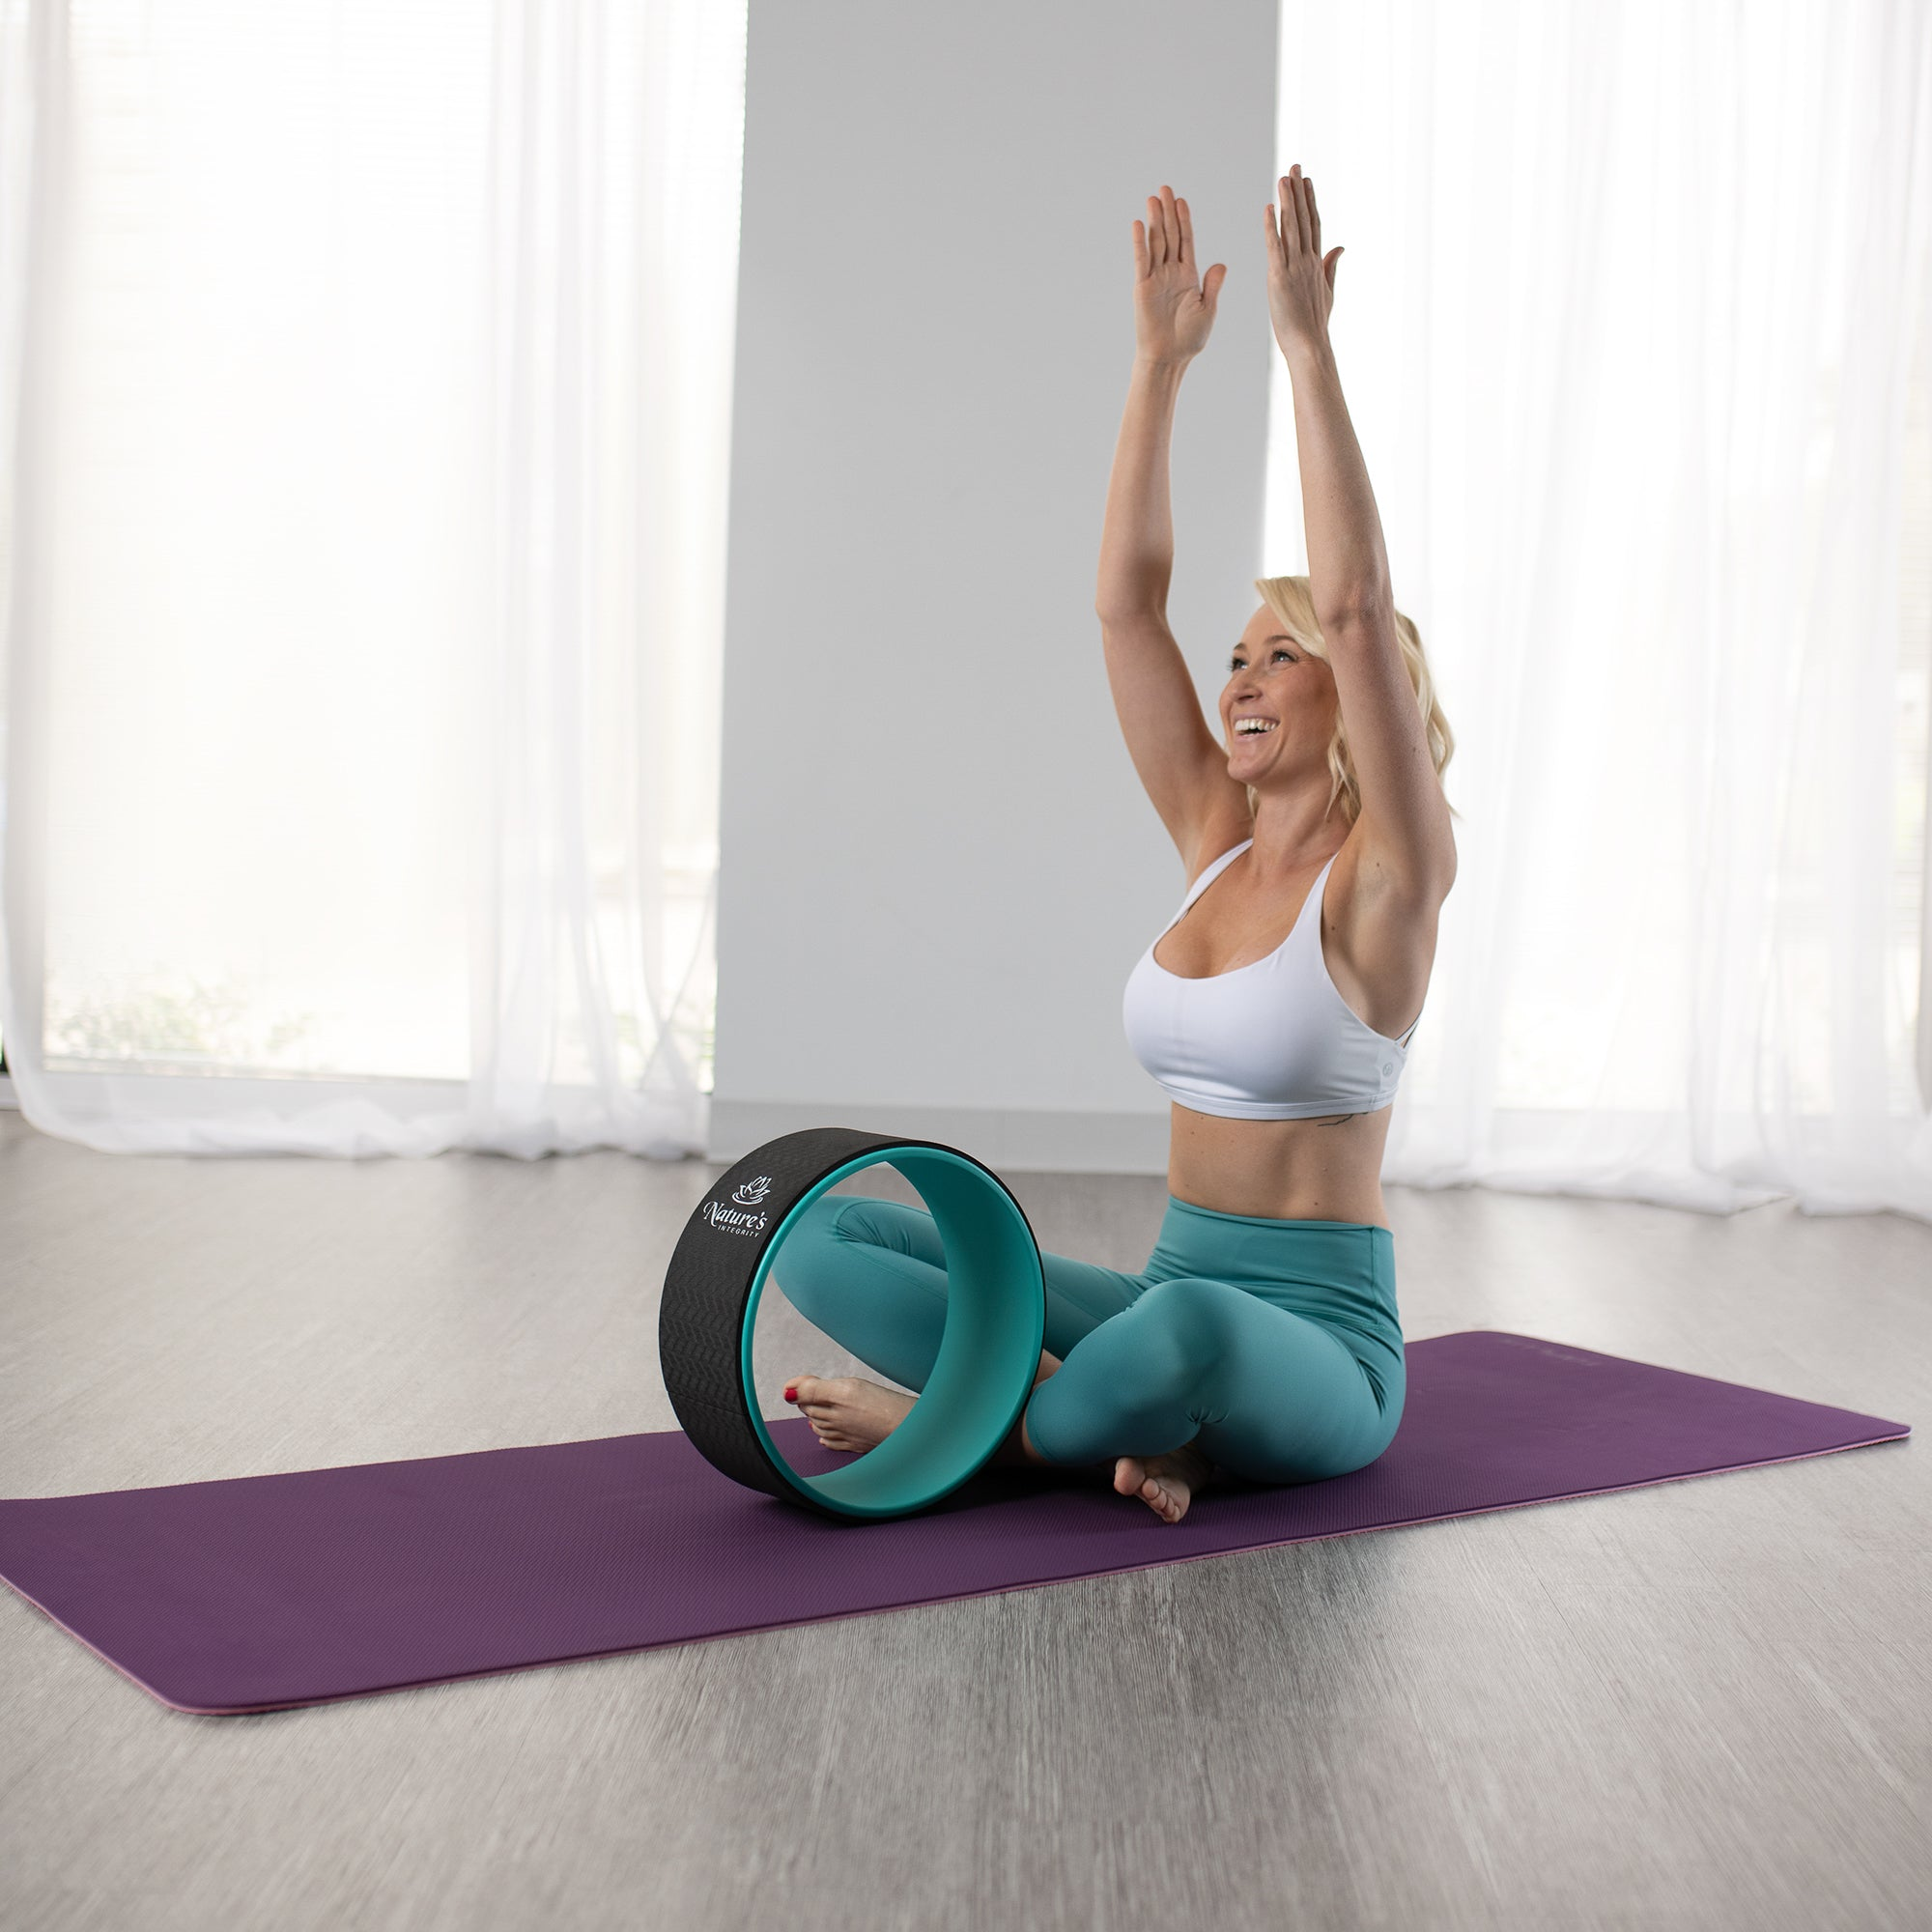 Professional Amazon Product Photography Example Lifestyle Model Yoga